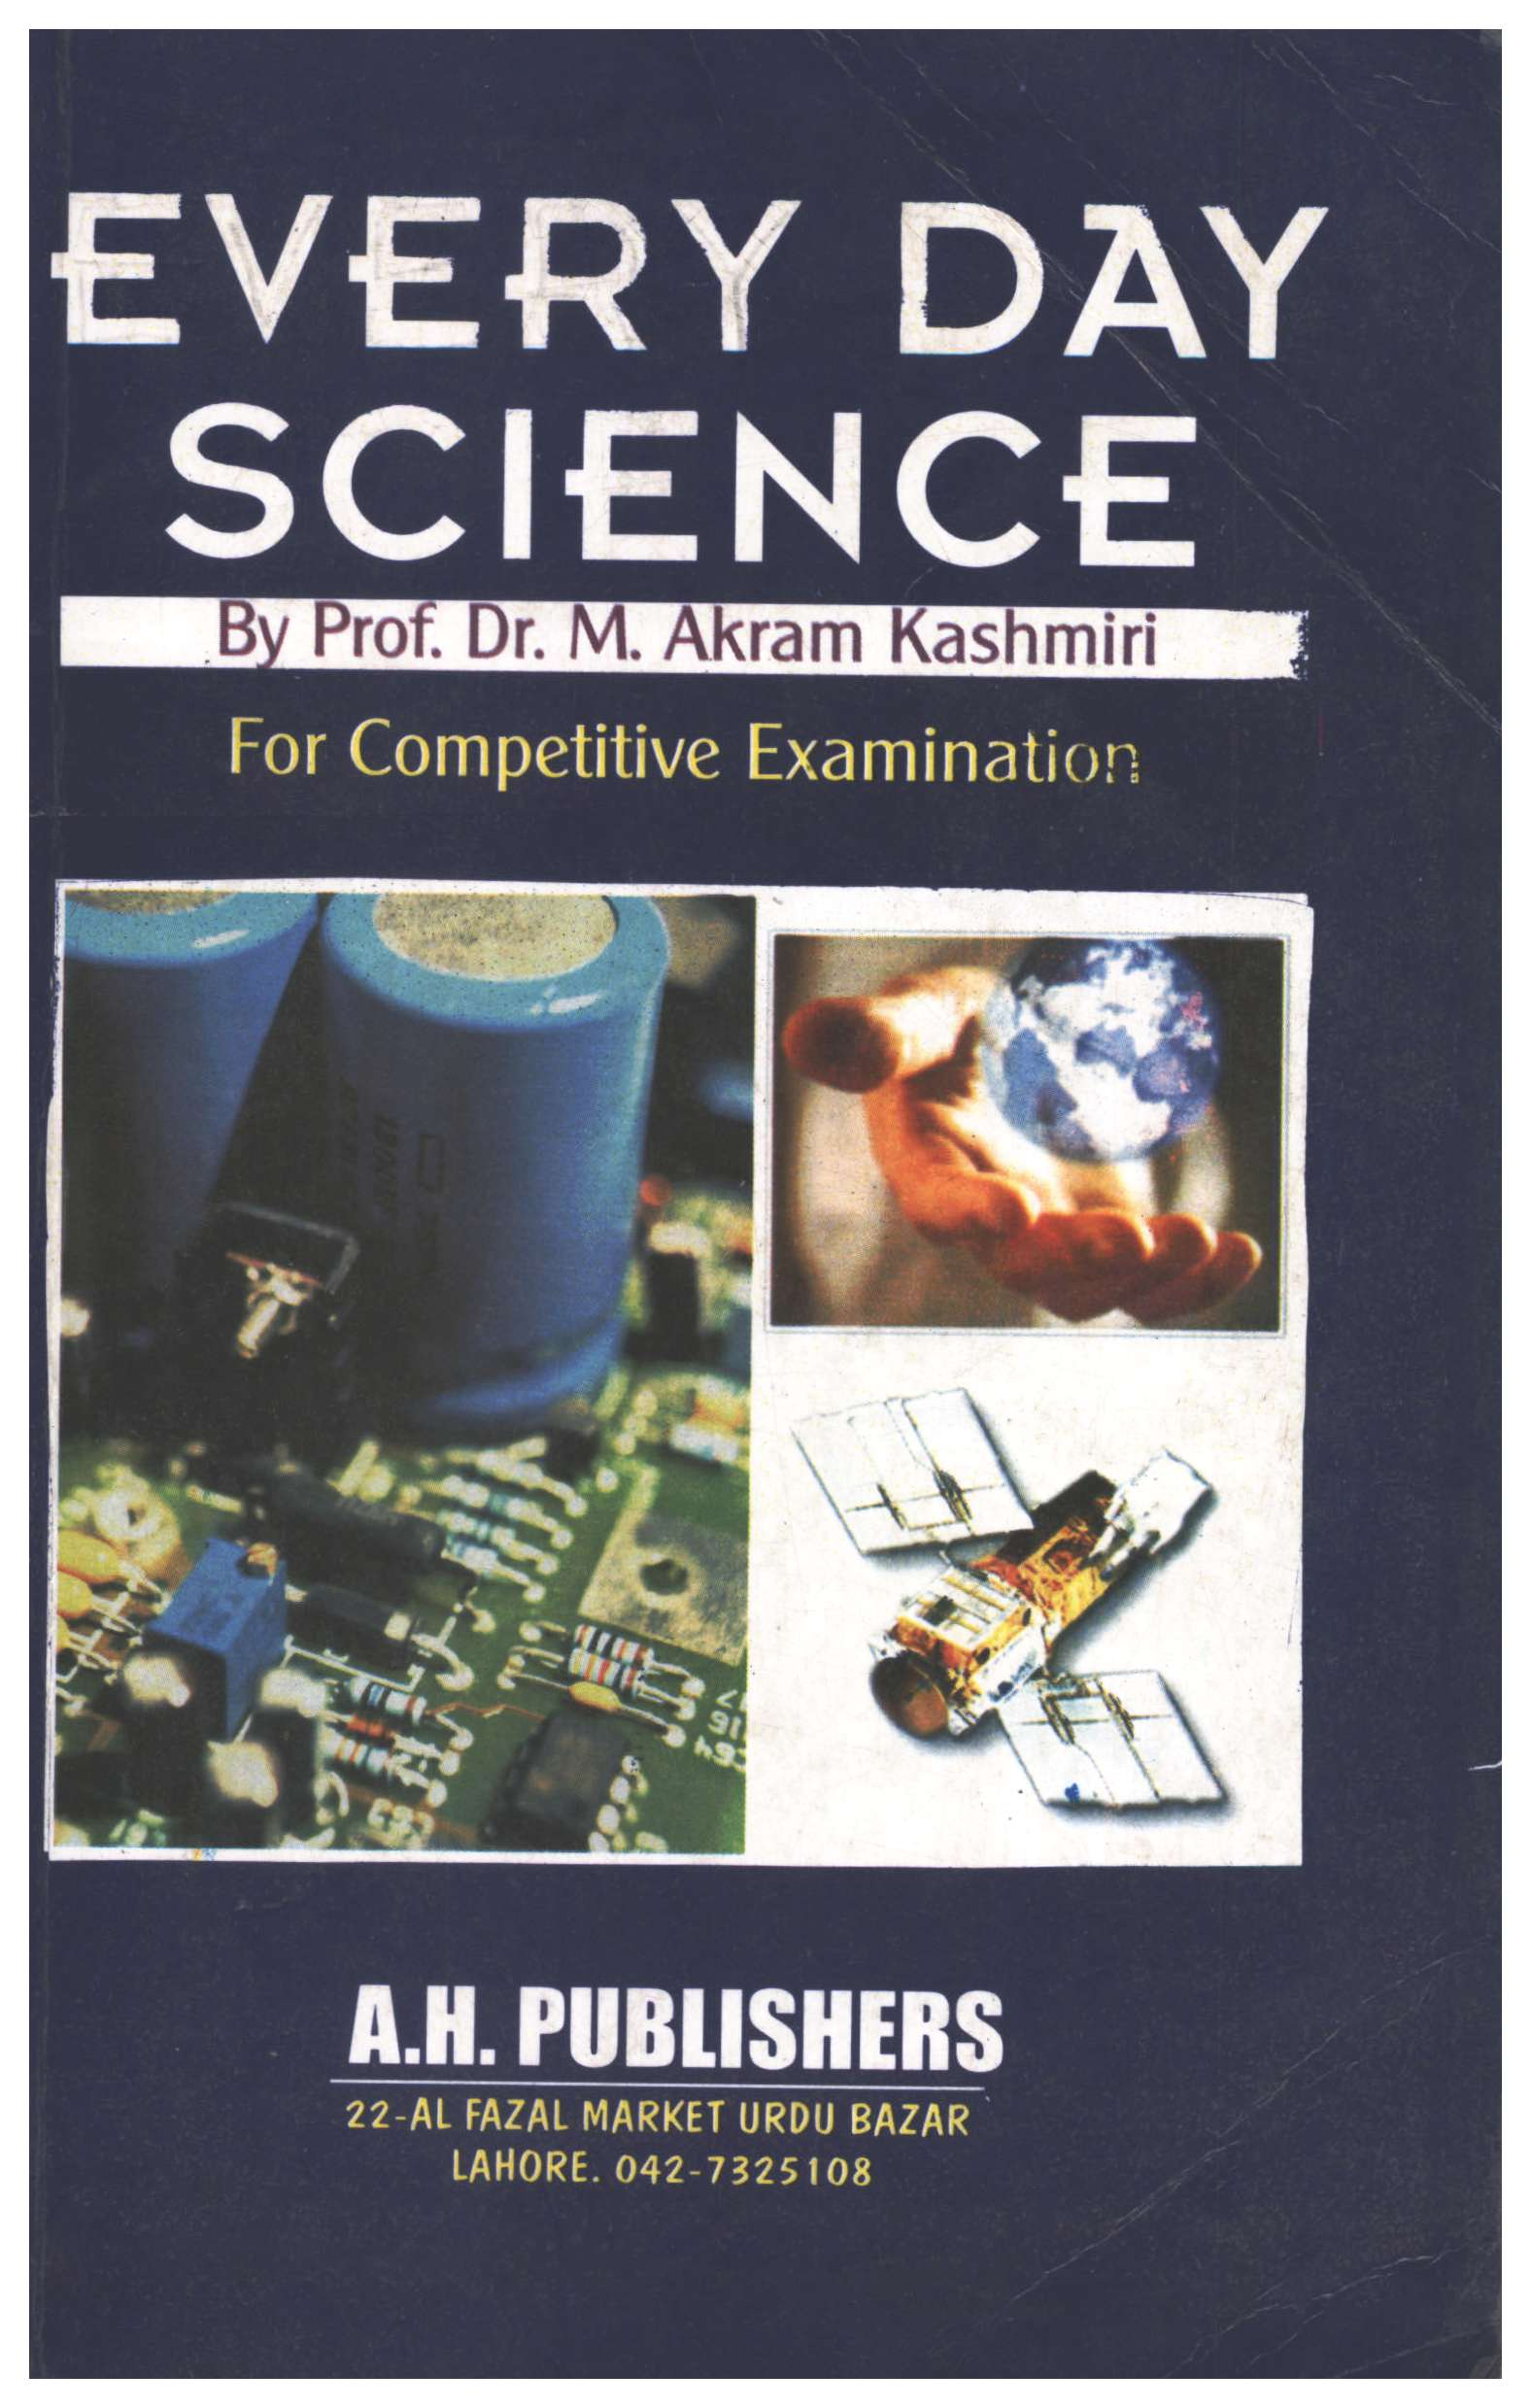 EVERY DAY SCIENCE Book Free Download